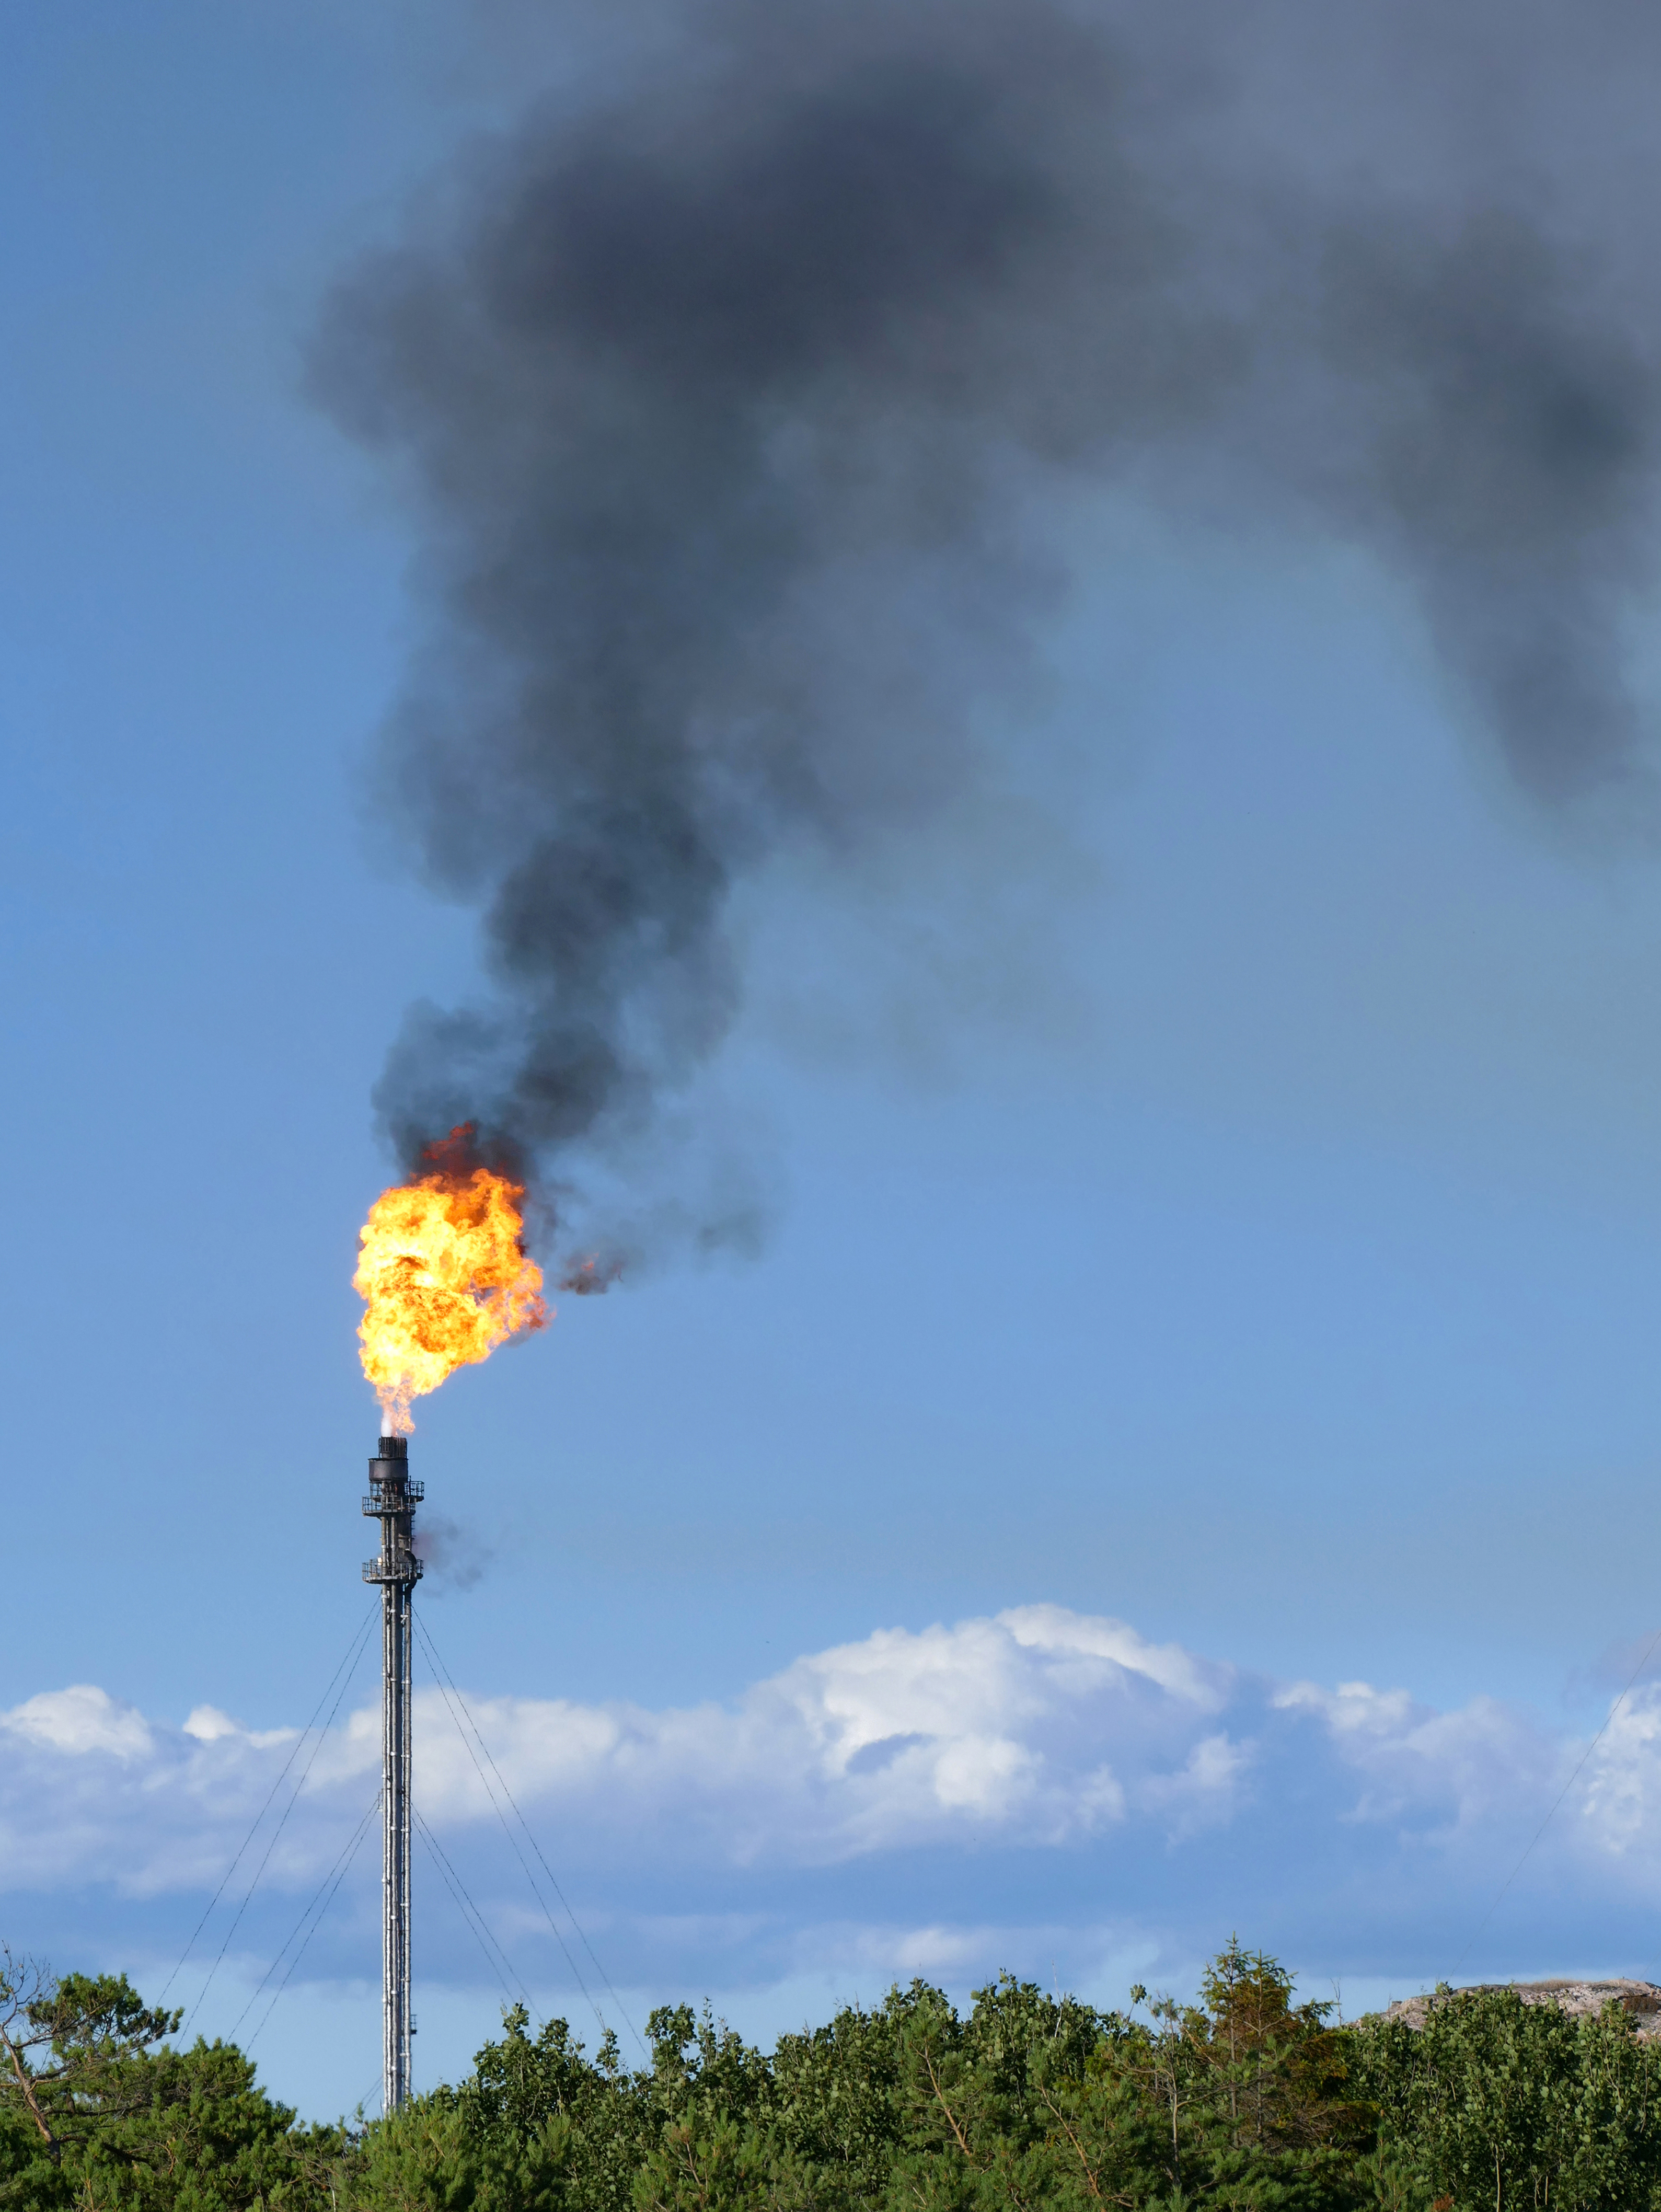 File:Gas flare on top of a flare stack at Preemraff Lysekil 1.jpg - Wikimedia  Commons